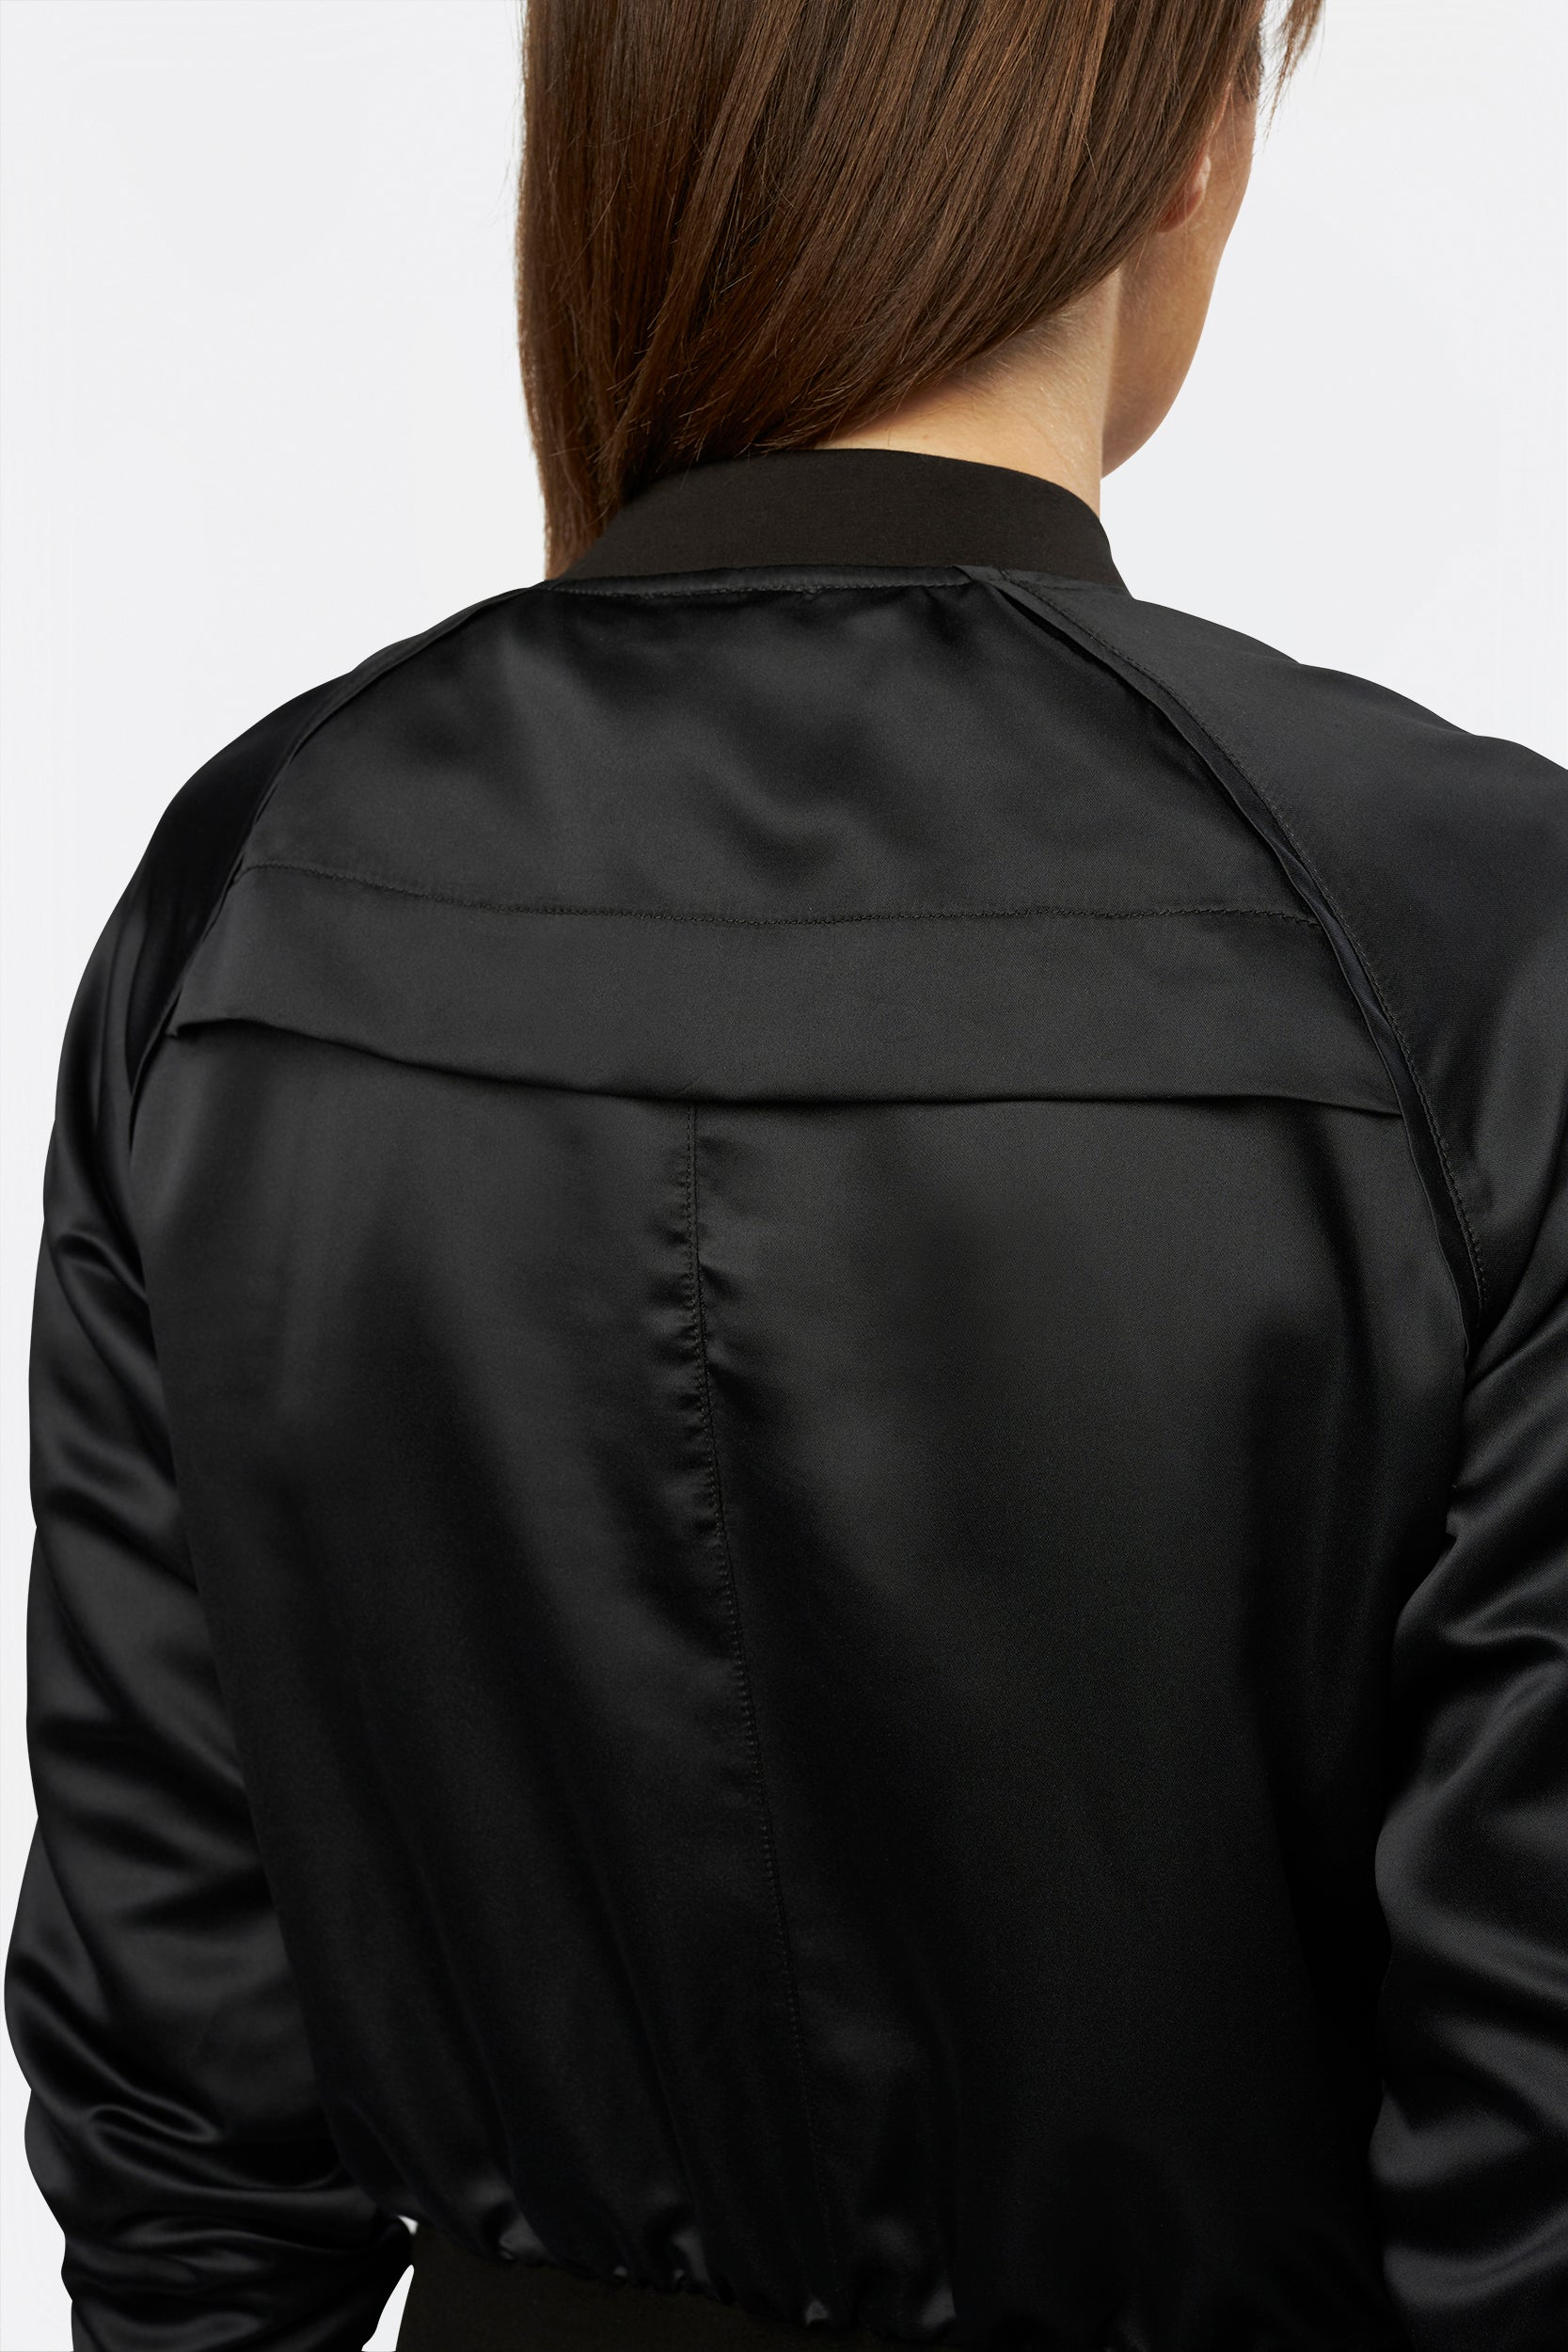 Beauty Bomber Jacket by INLARKIN blends sporty with sassy